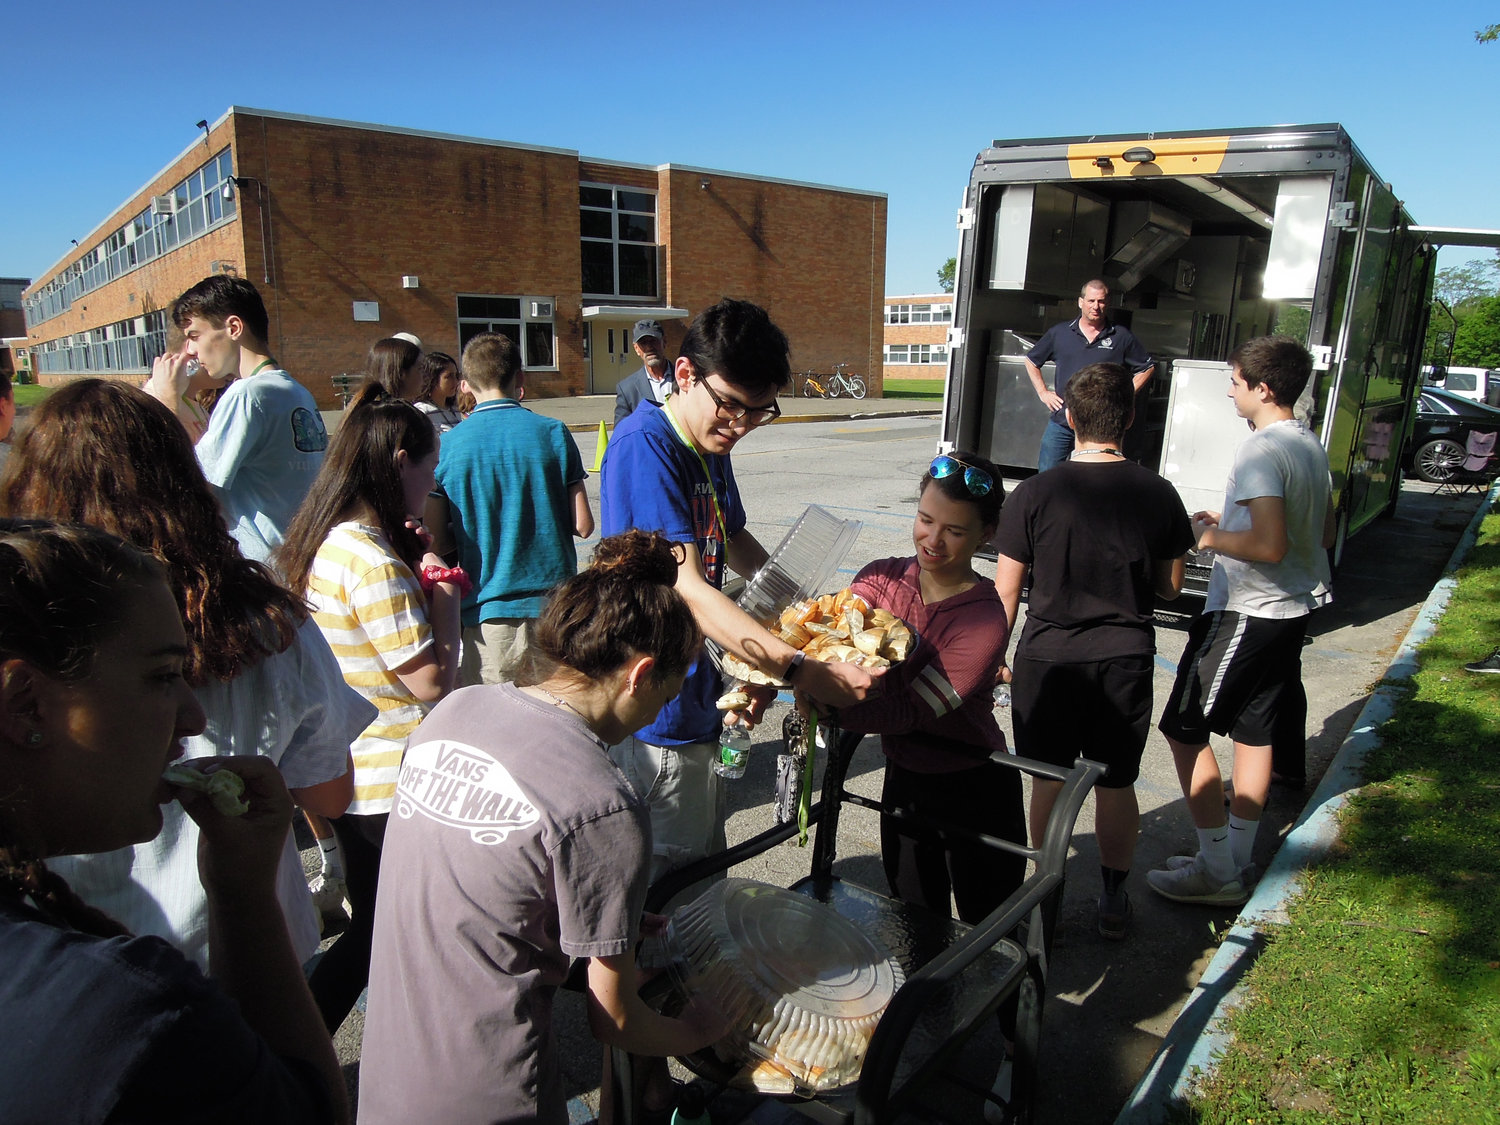 Seaford High School students helped themselves to bagels and beverages as Robbins looked on.